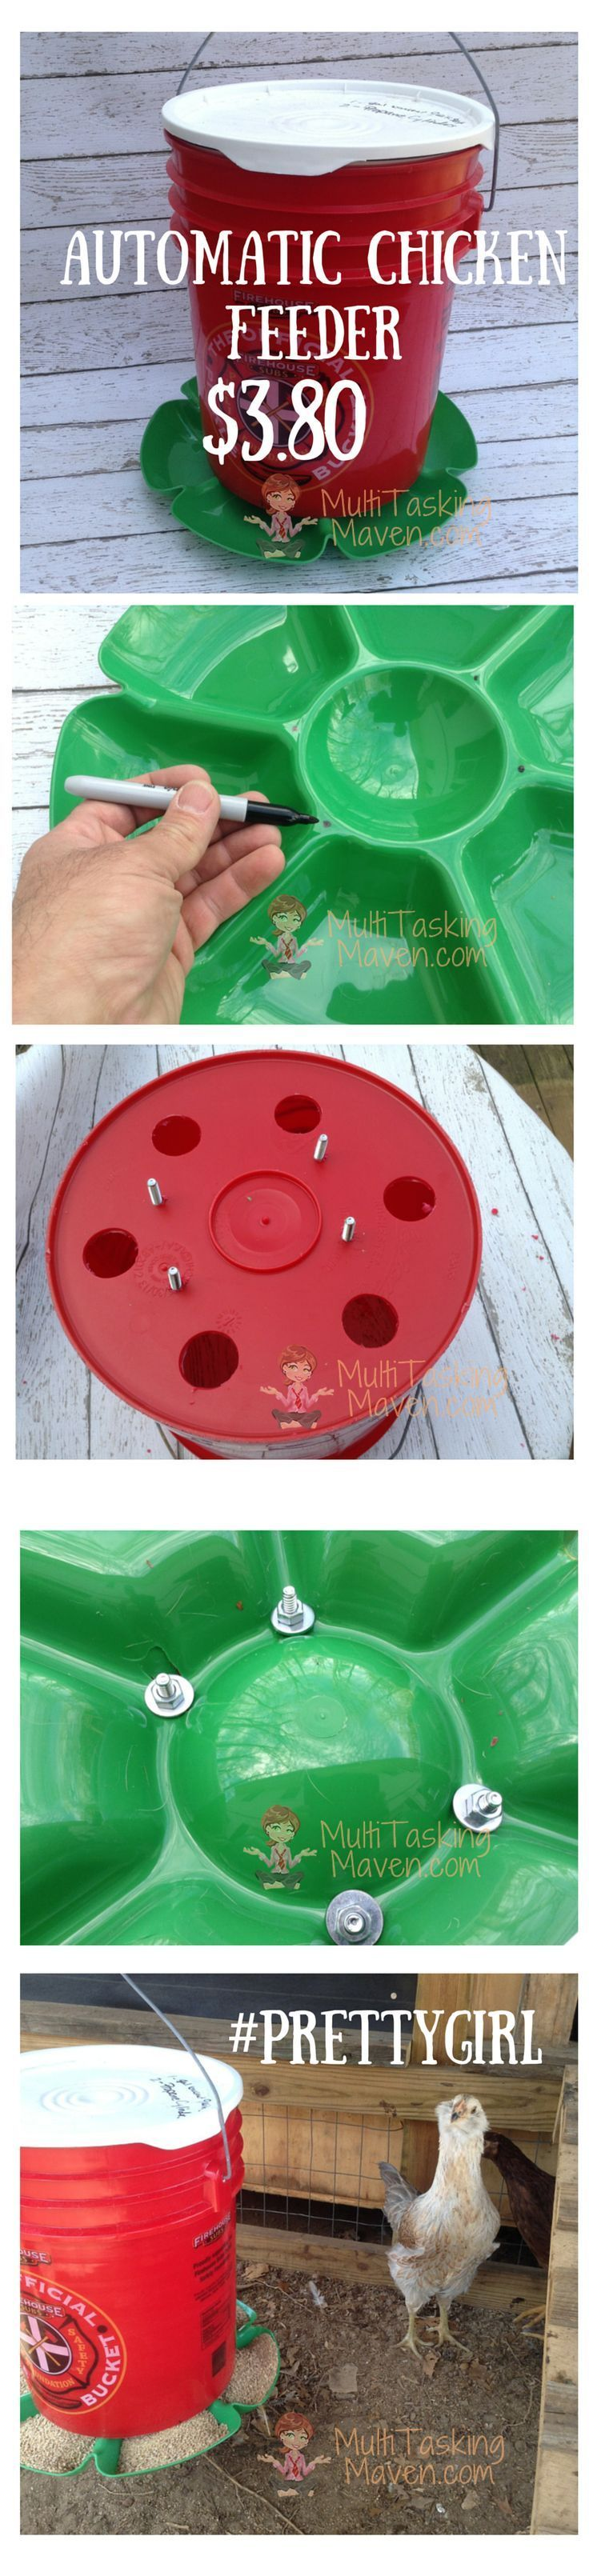 Easy DIY automatic chicken feeder for only $3.80 versus $30 Retail. Follow as we raise 15 chickens on our city farm. How to budget and money saving tips. For a Step by Step Tutorial Read More Here:  http://www.multitaskingmaven.com/blog/diy-how-to-make-an-automatic-chicken-feeder